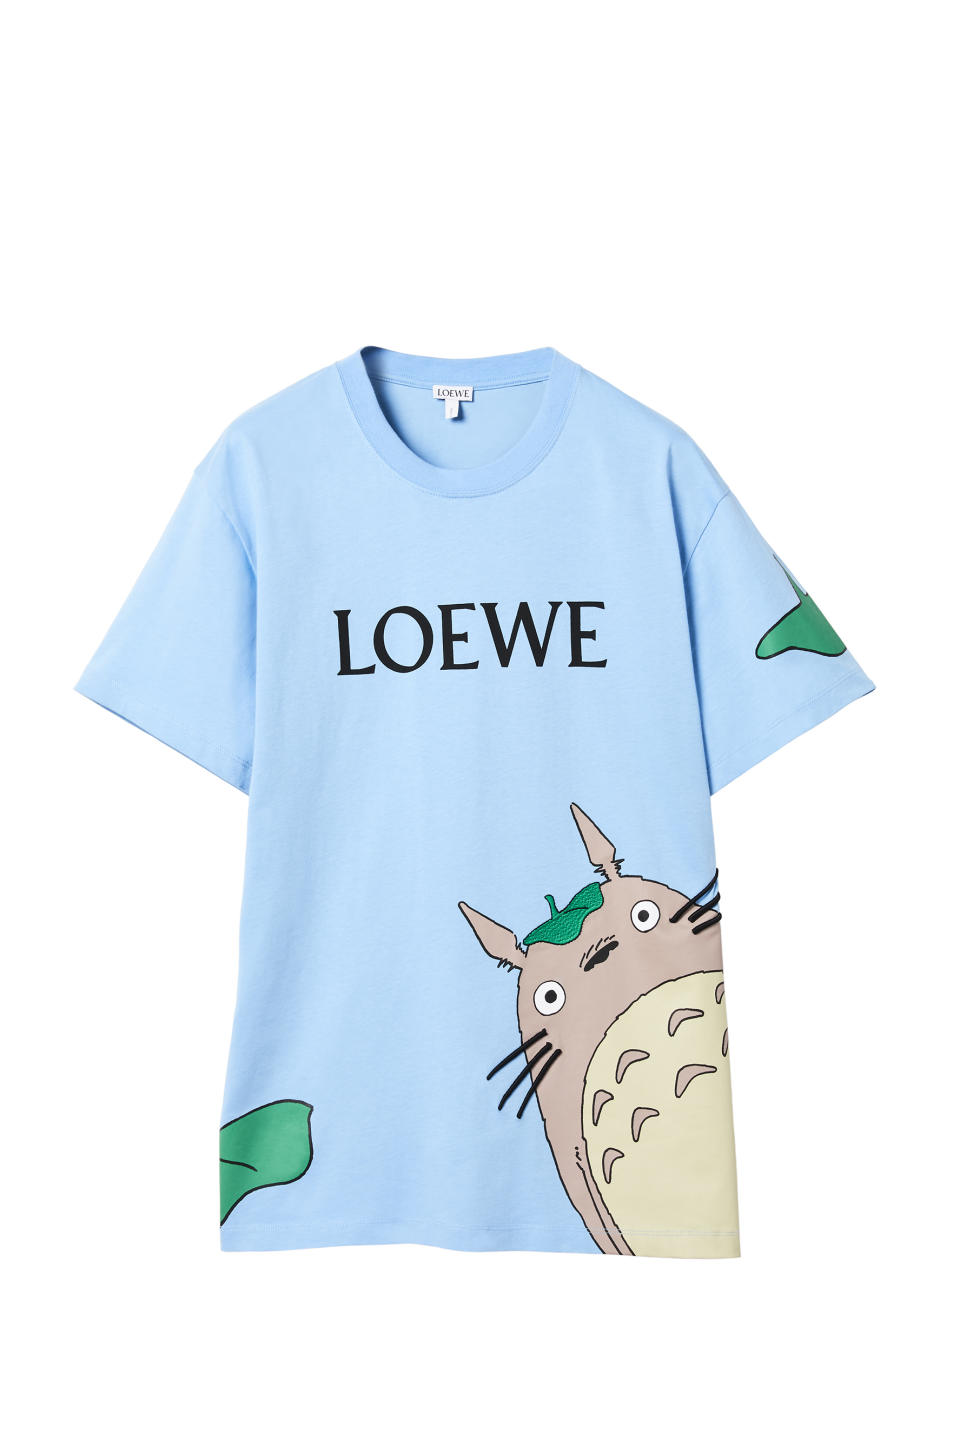 My Neighbour Totoro collection. (PHOTO: Loewe)